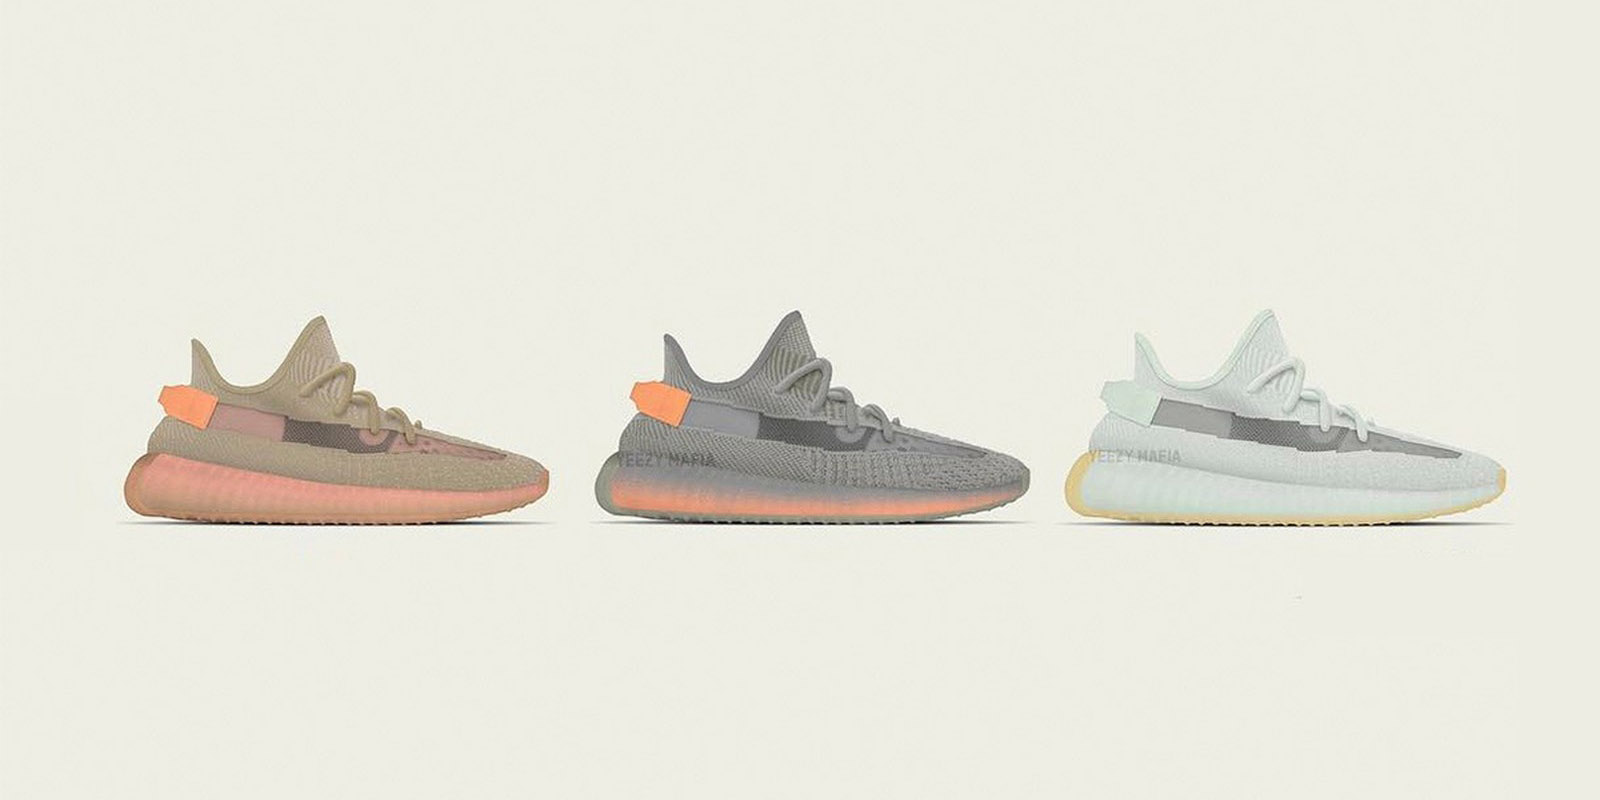 Regional Release - Hyperspace Earth Trfrm - Yeezy Resale Value - AIO Bot